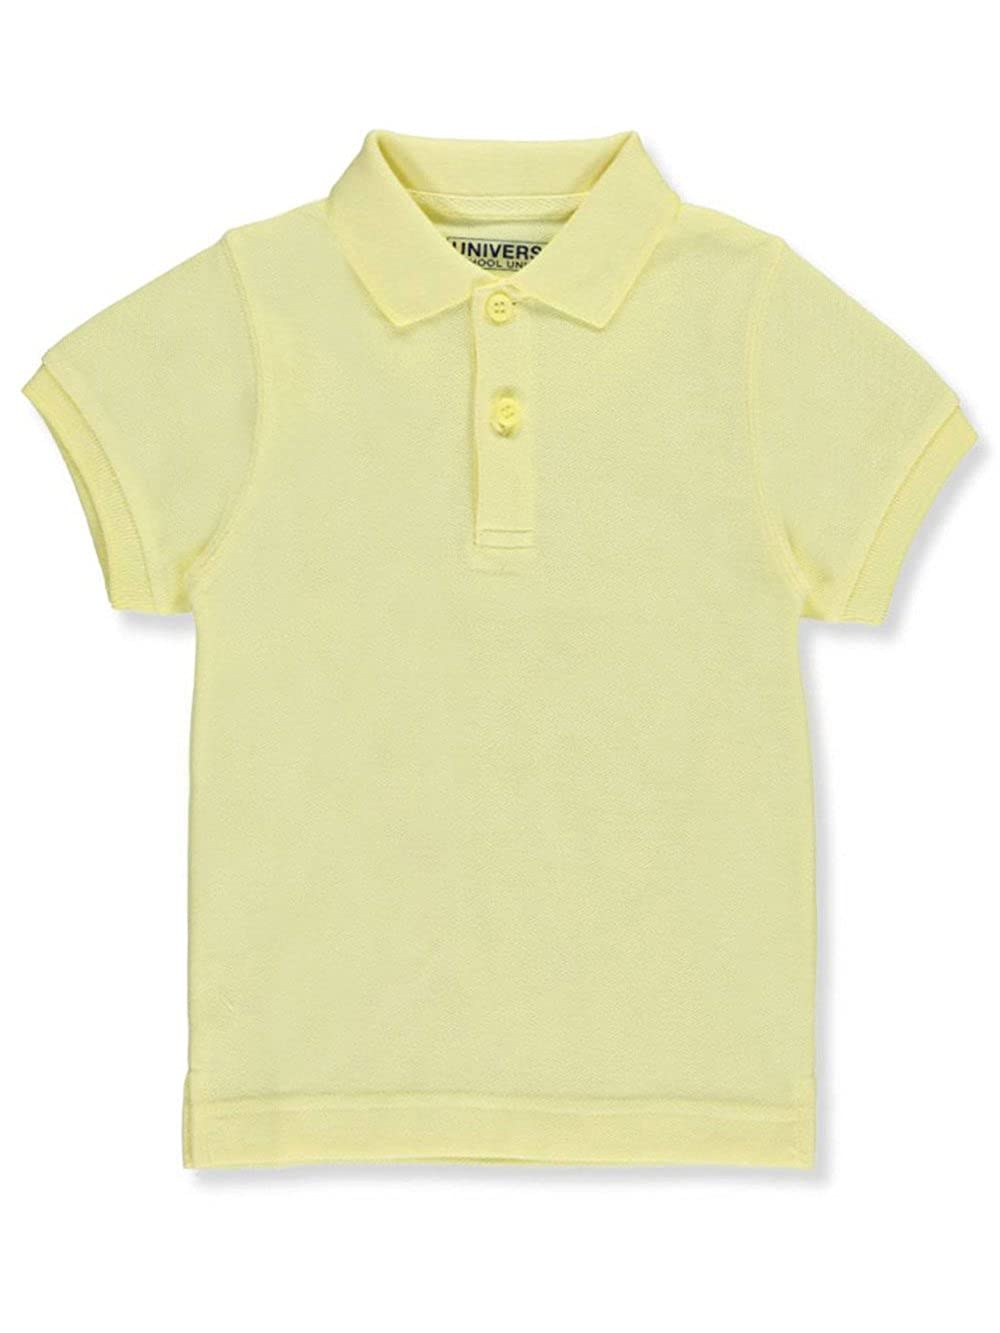 Children's Short Sleeve Pique Polo Shirt - Yellow, 16 Universal